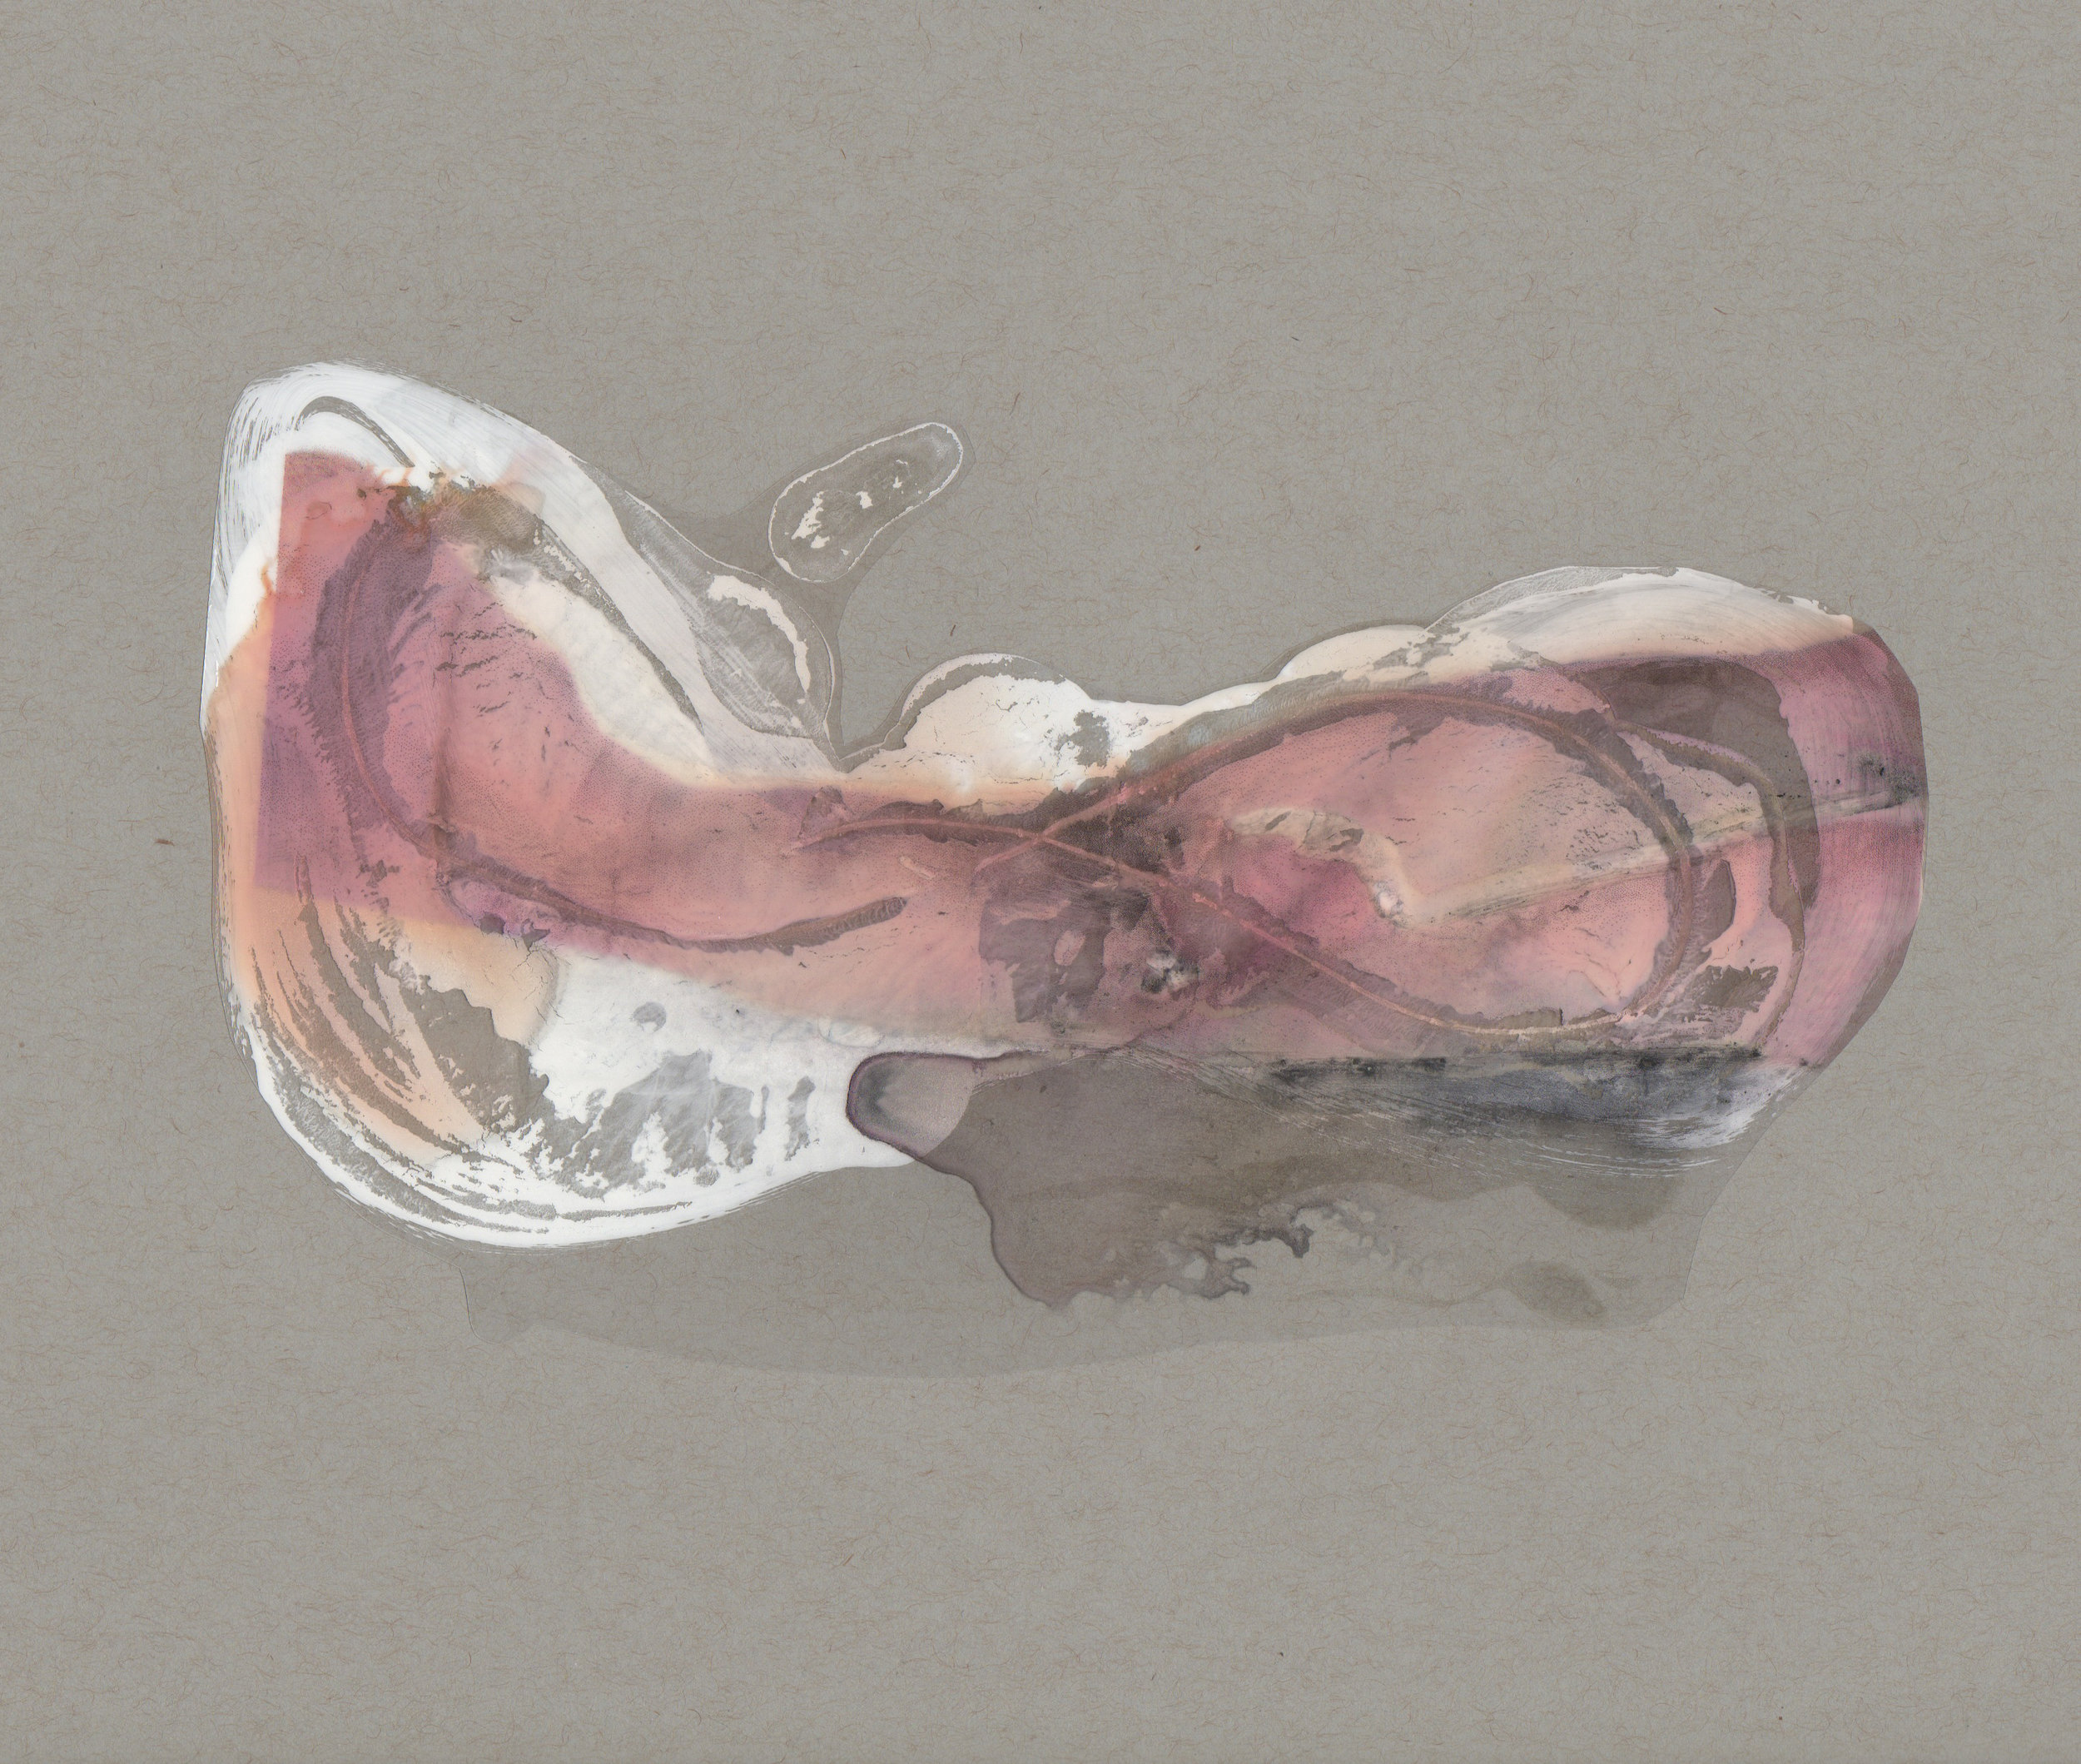 Infinity, 2014, paint transparency archival ink and paper, 9x12 inches